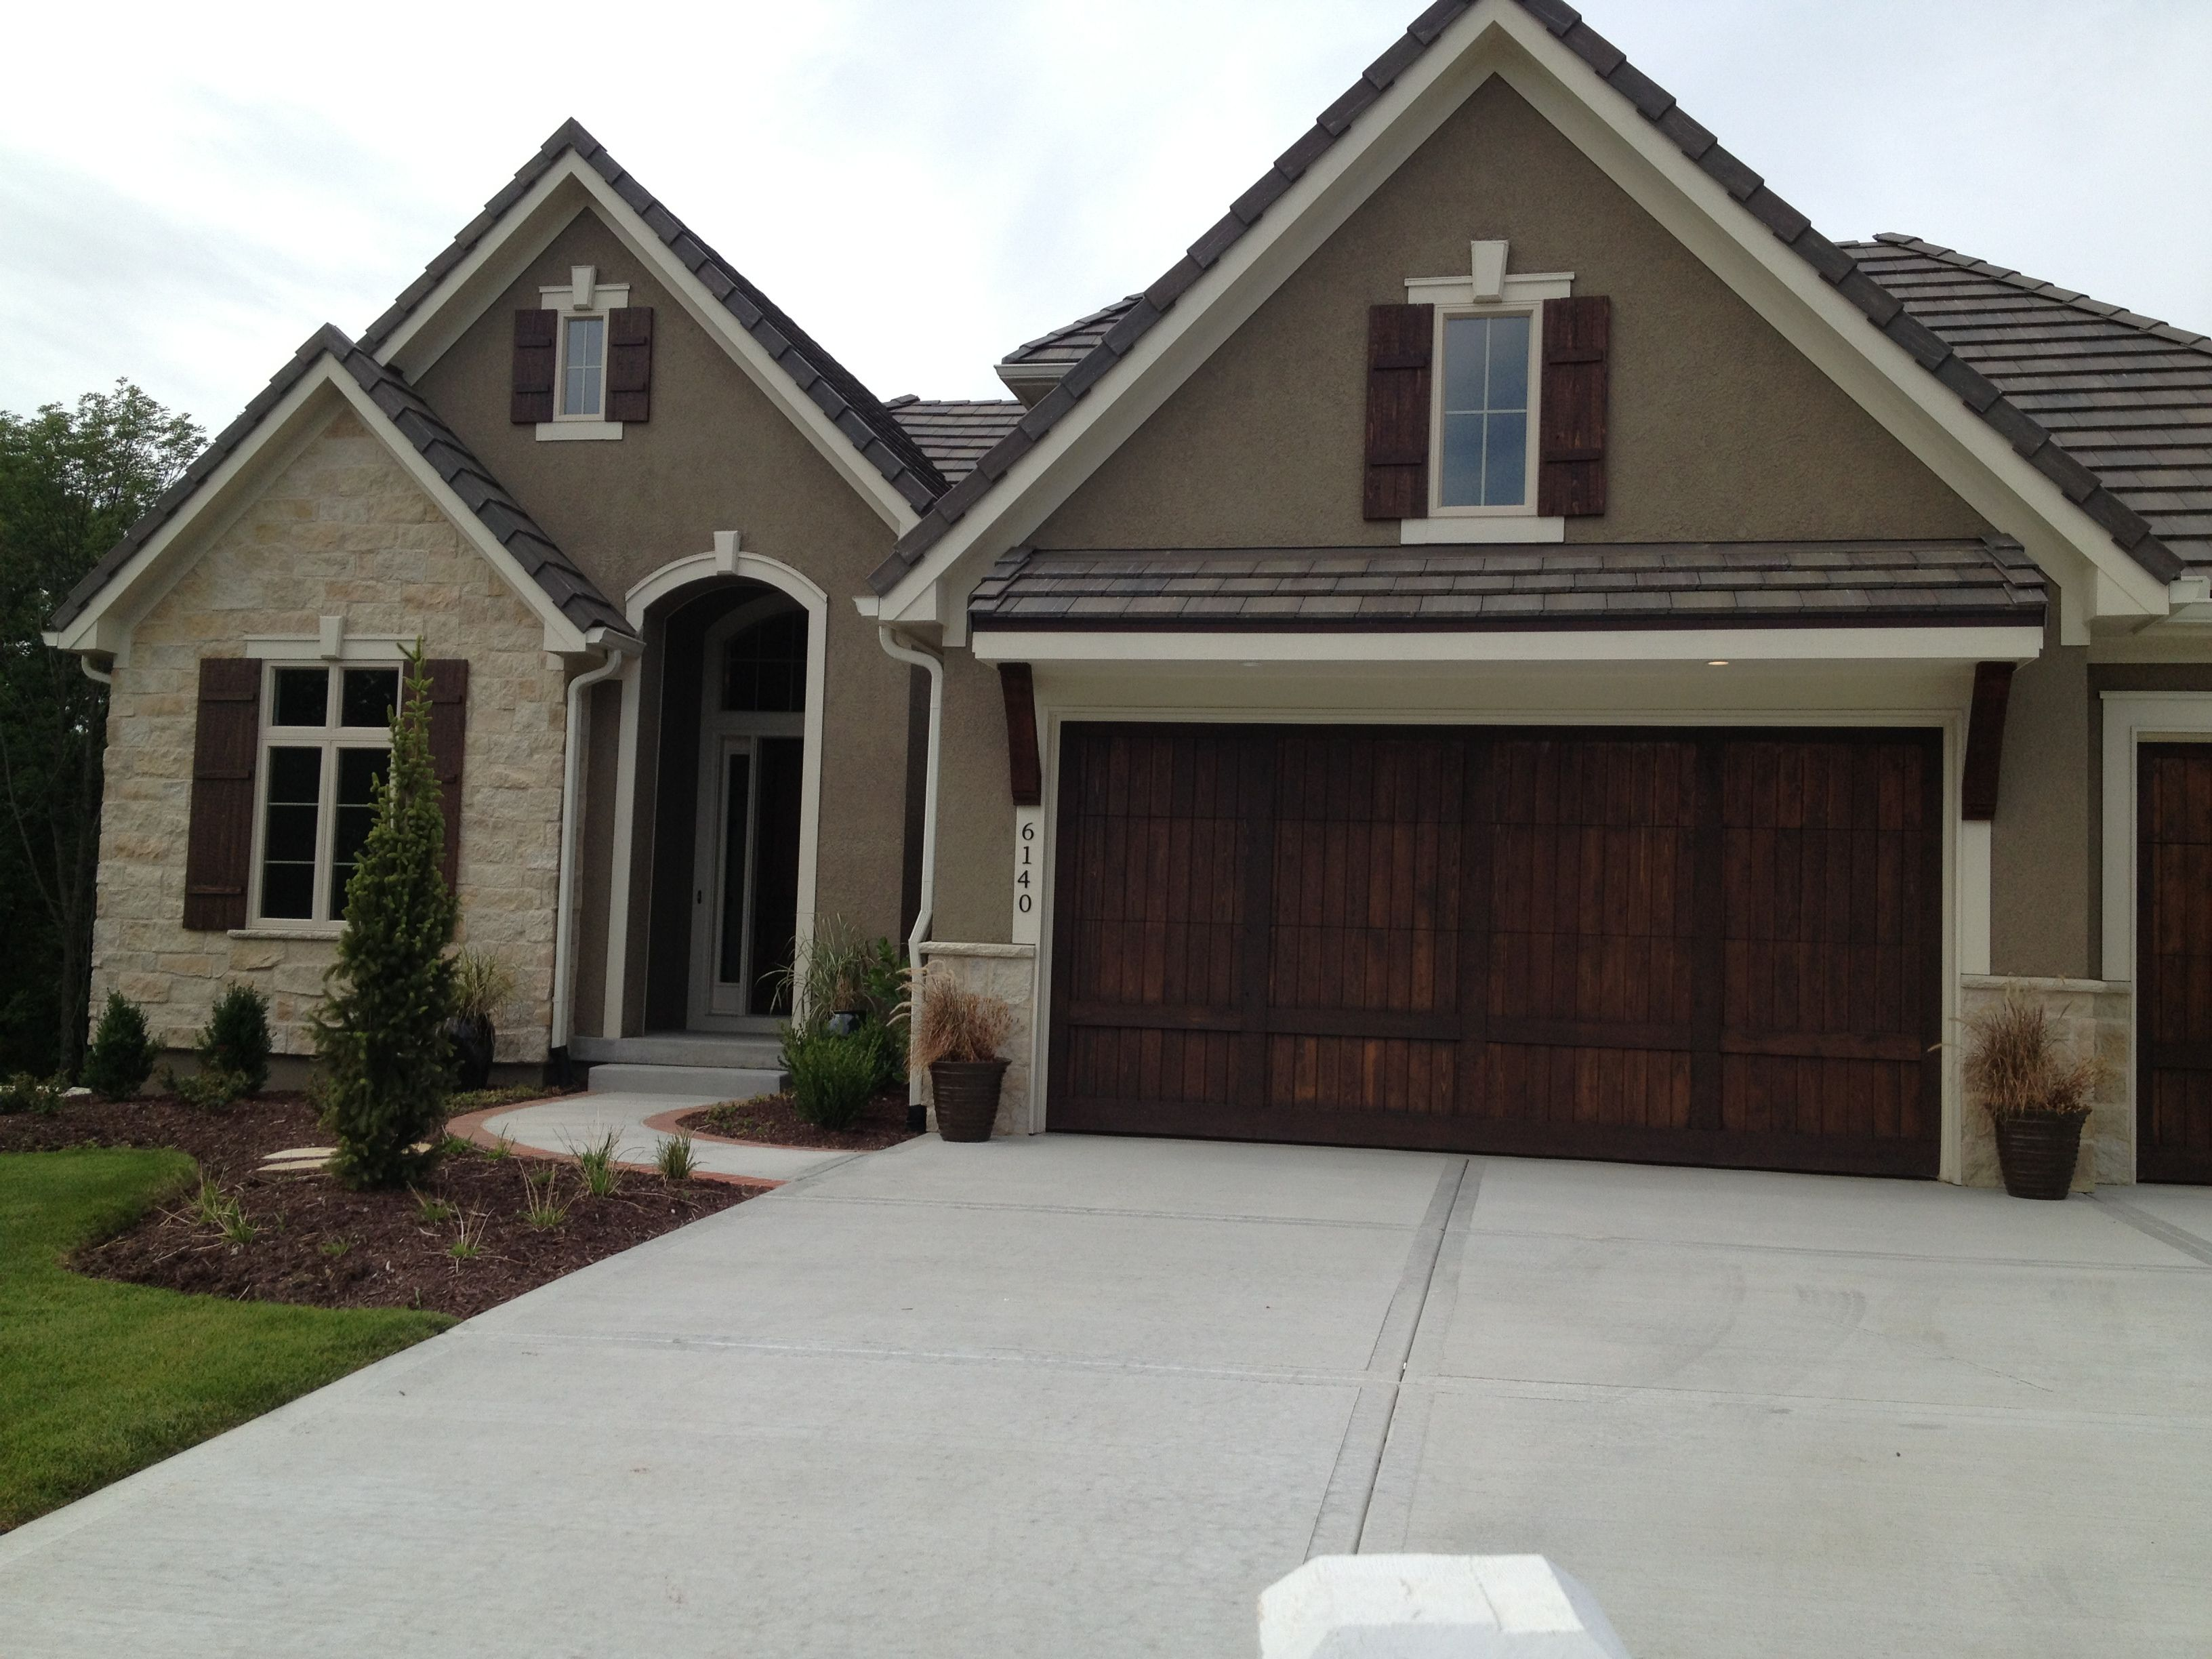 Like exterior colors wood garage door no visible hardware and wood shutters exterior for Exterior garage doors